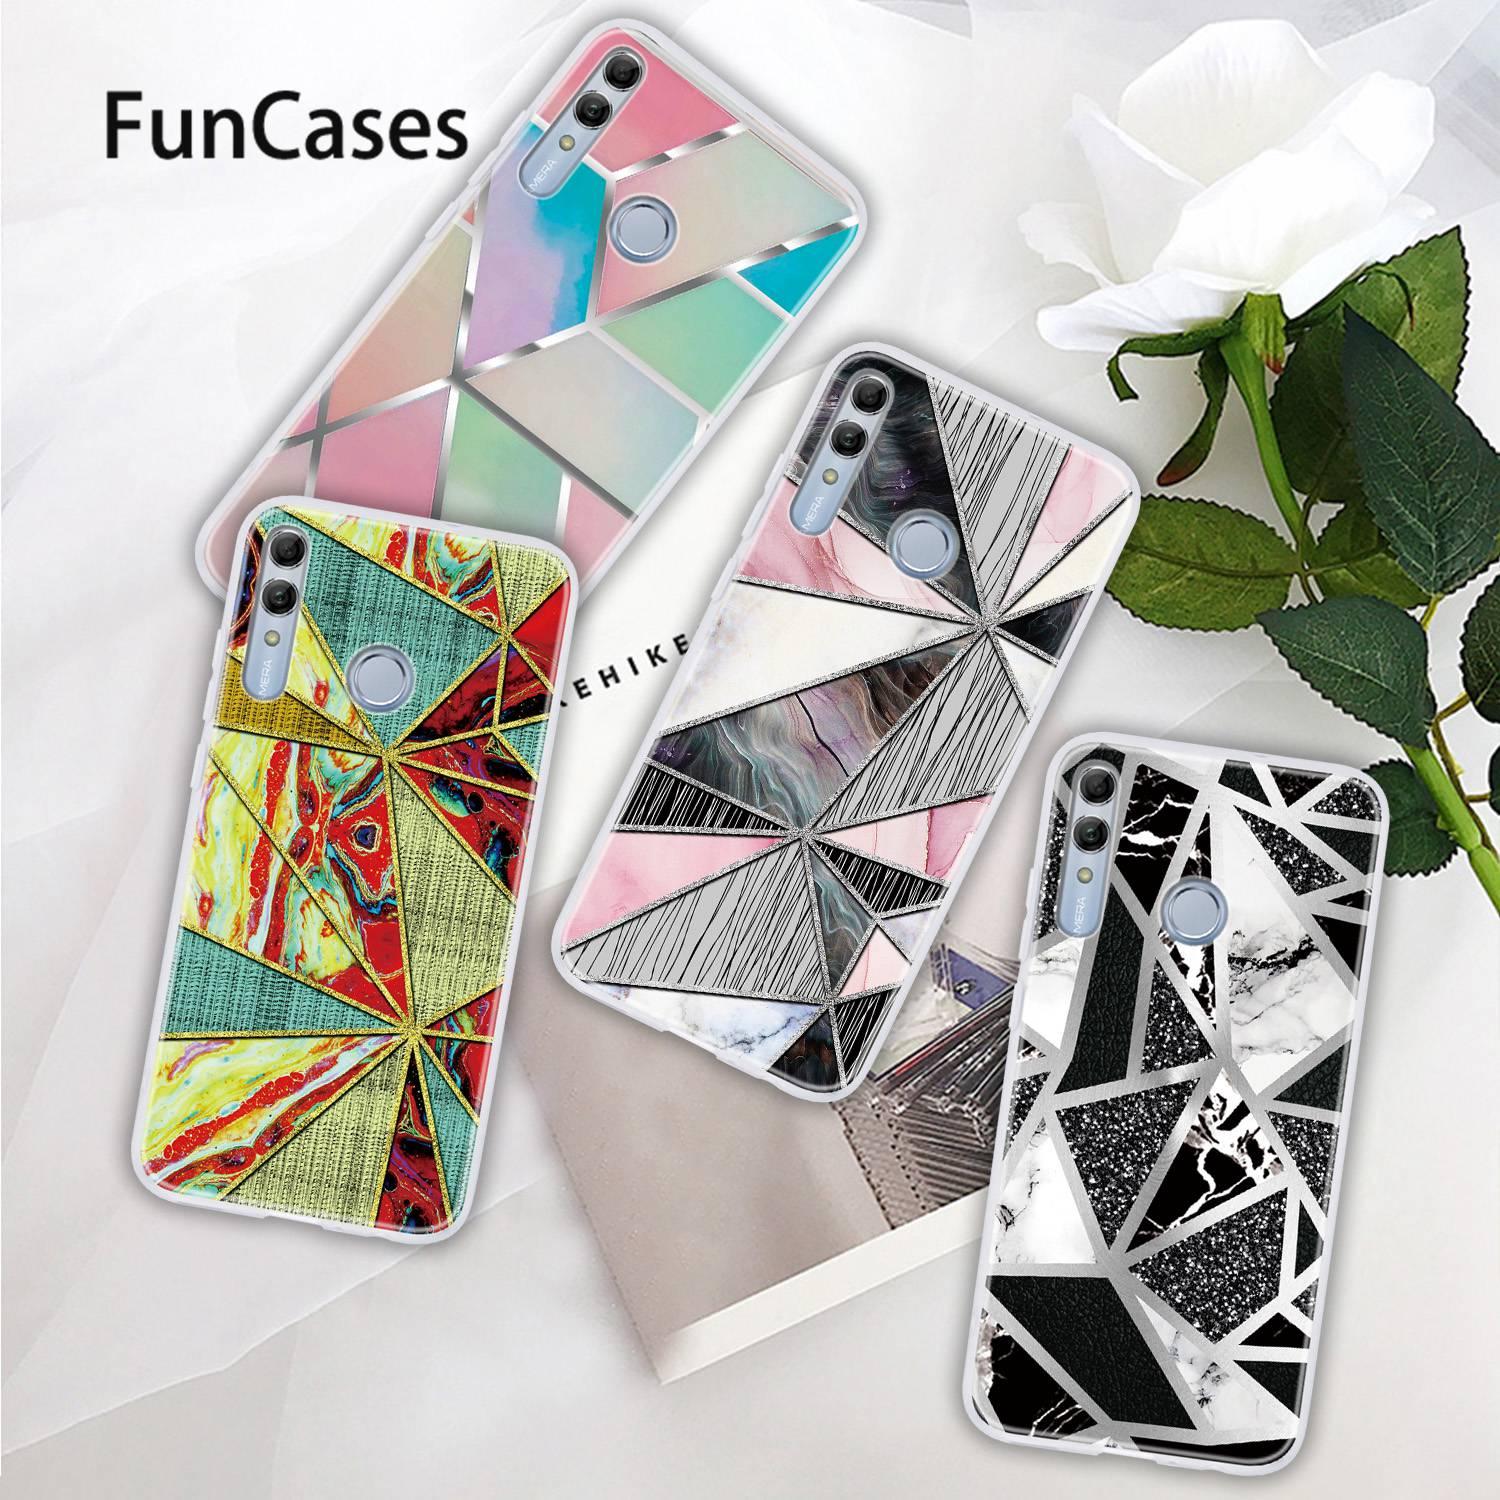 Cute Soft TPU Shell For Huawei <font><b>P</b></font> Smart 2019 Huawei Honor 10 <font><b>Lite</b></font> <font><b>P</b></font> Smart Plus 2019 Mate <font><b>30</b></font> P20 P30 20 Pro Z Fundas Mobile Covers image